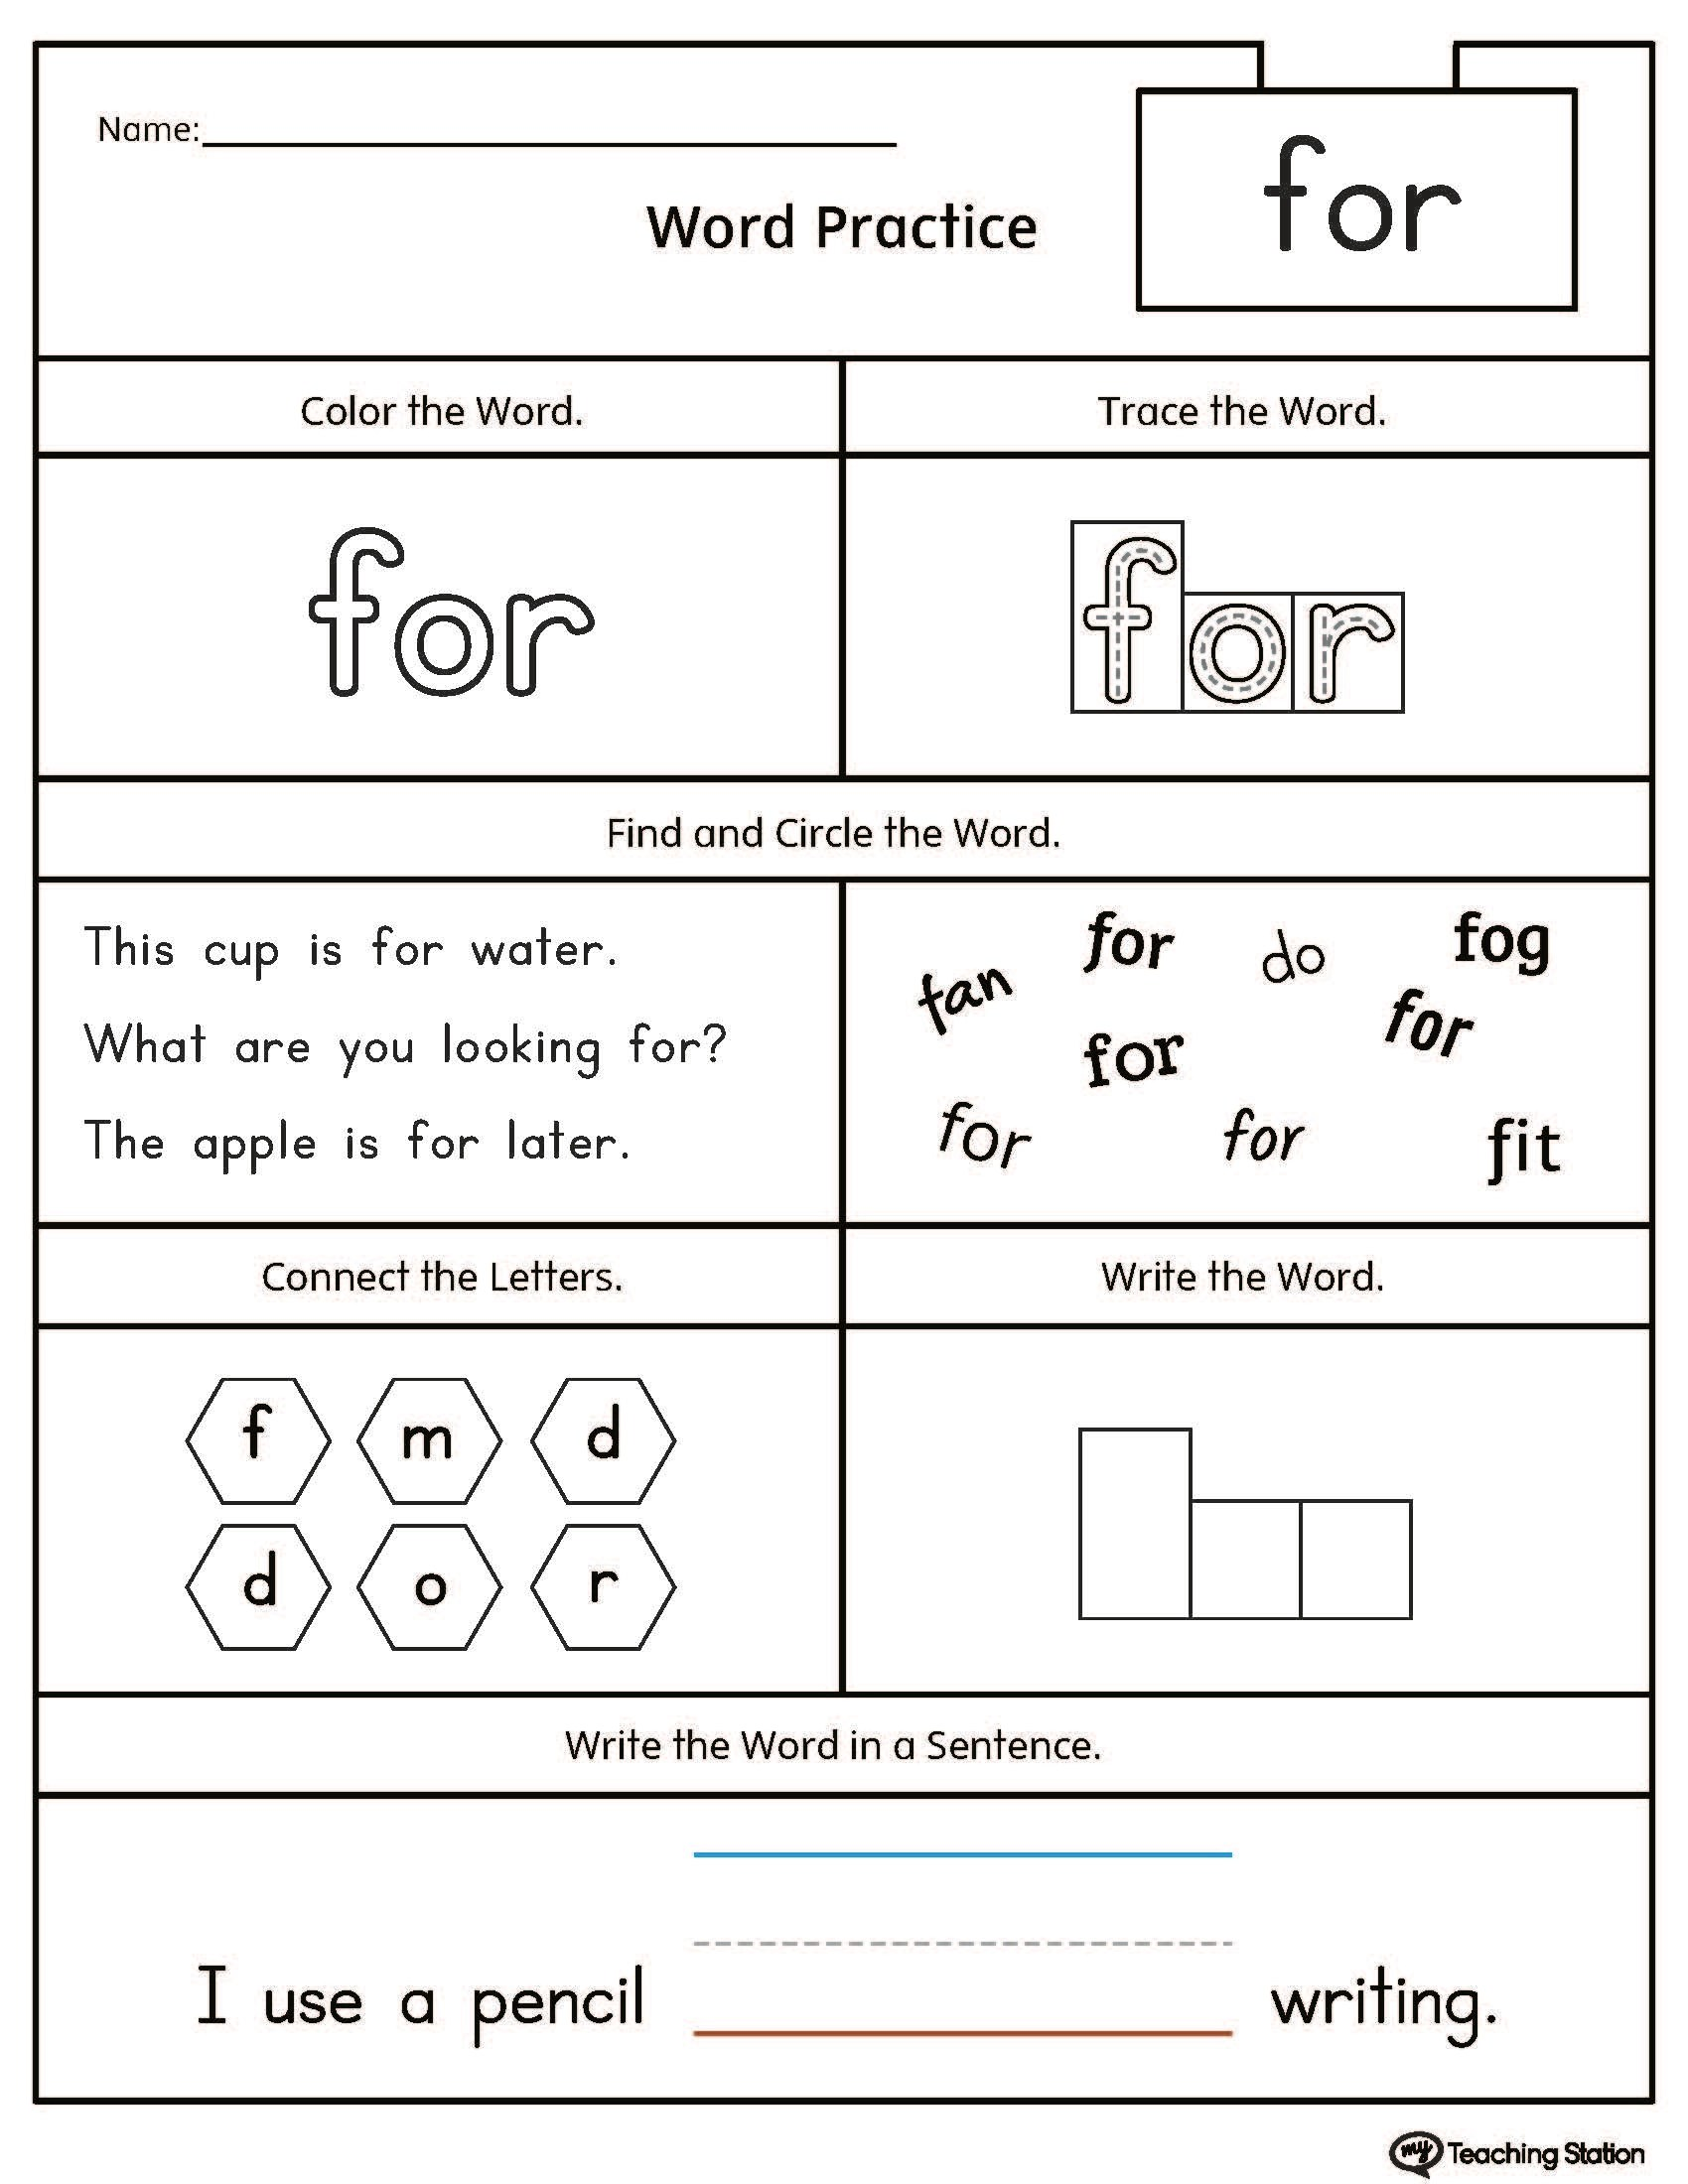 42 Sight Word Yes Worksheet